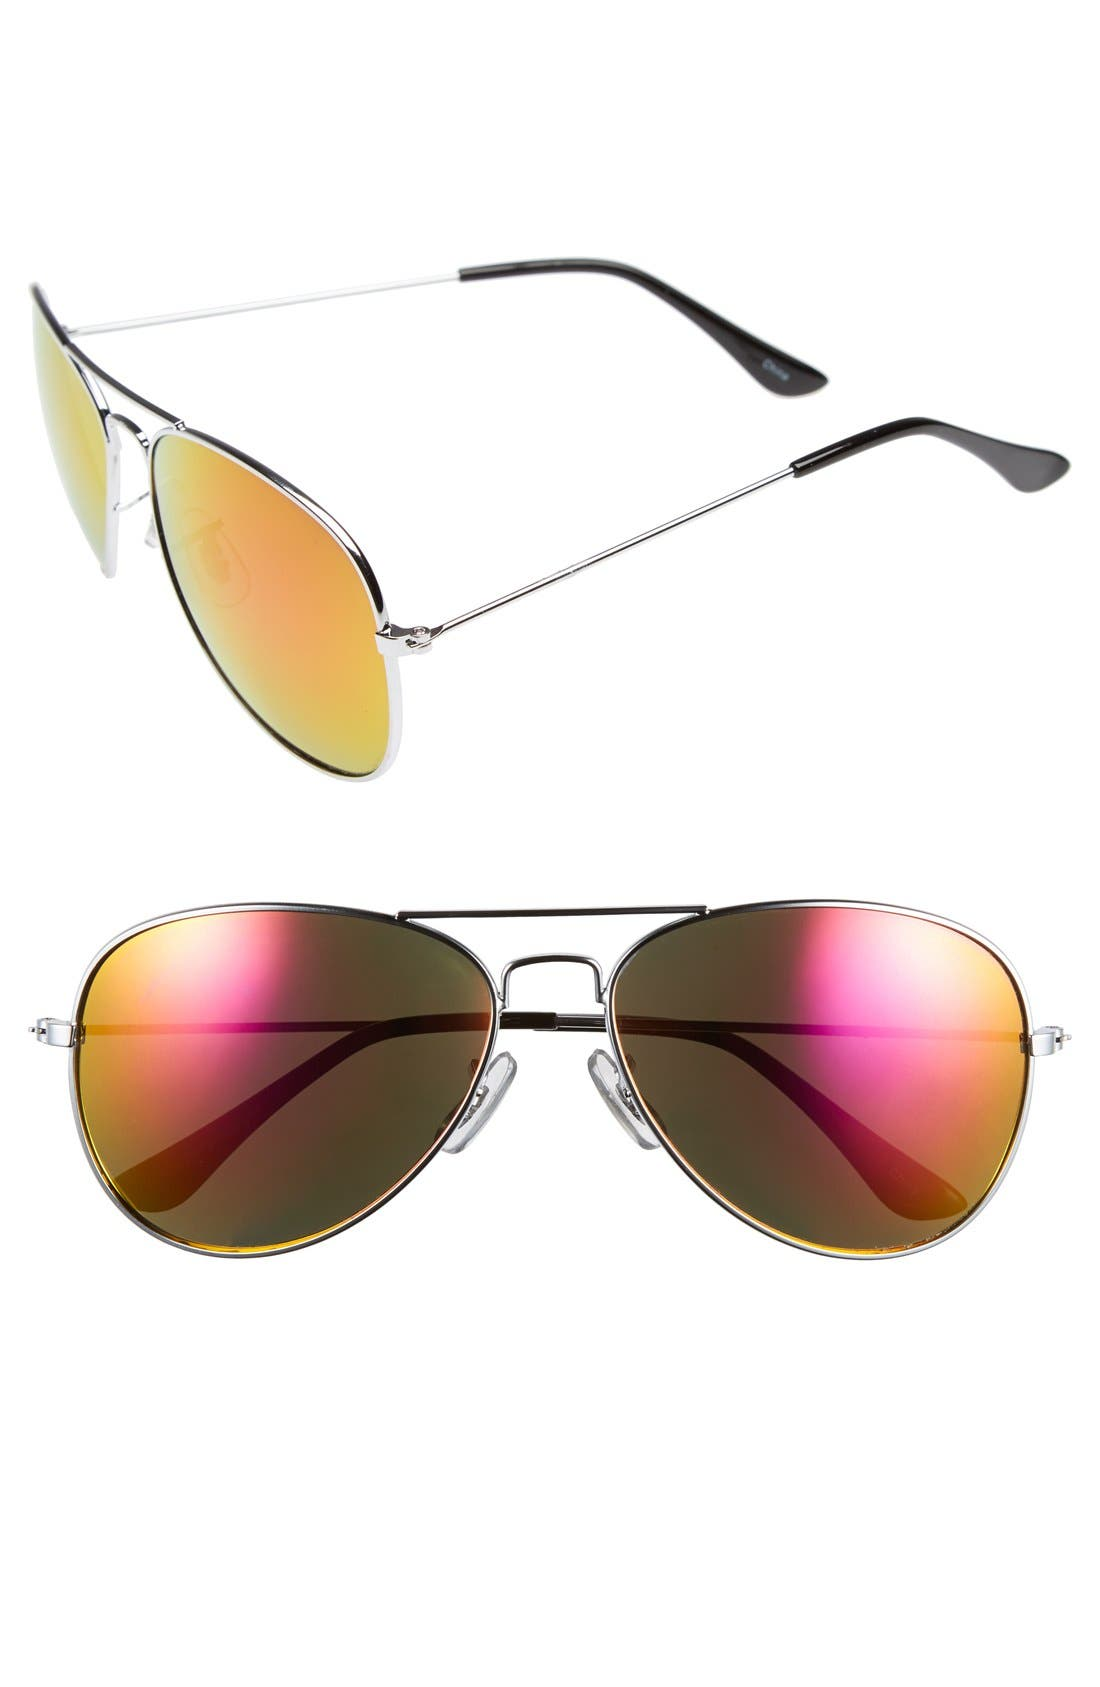 Main Image - Icon Eyewear 55mm Mirrored Aviator Sunglasses